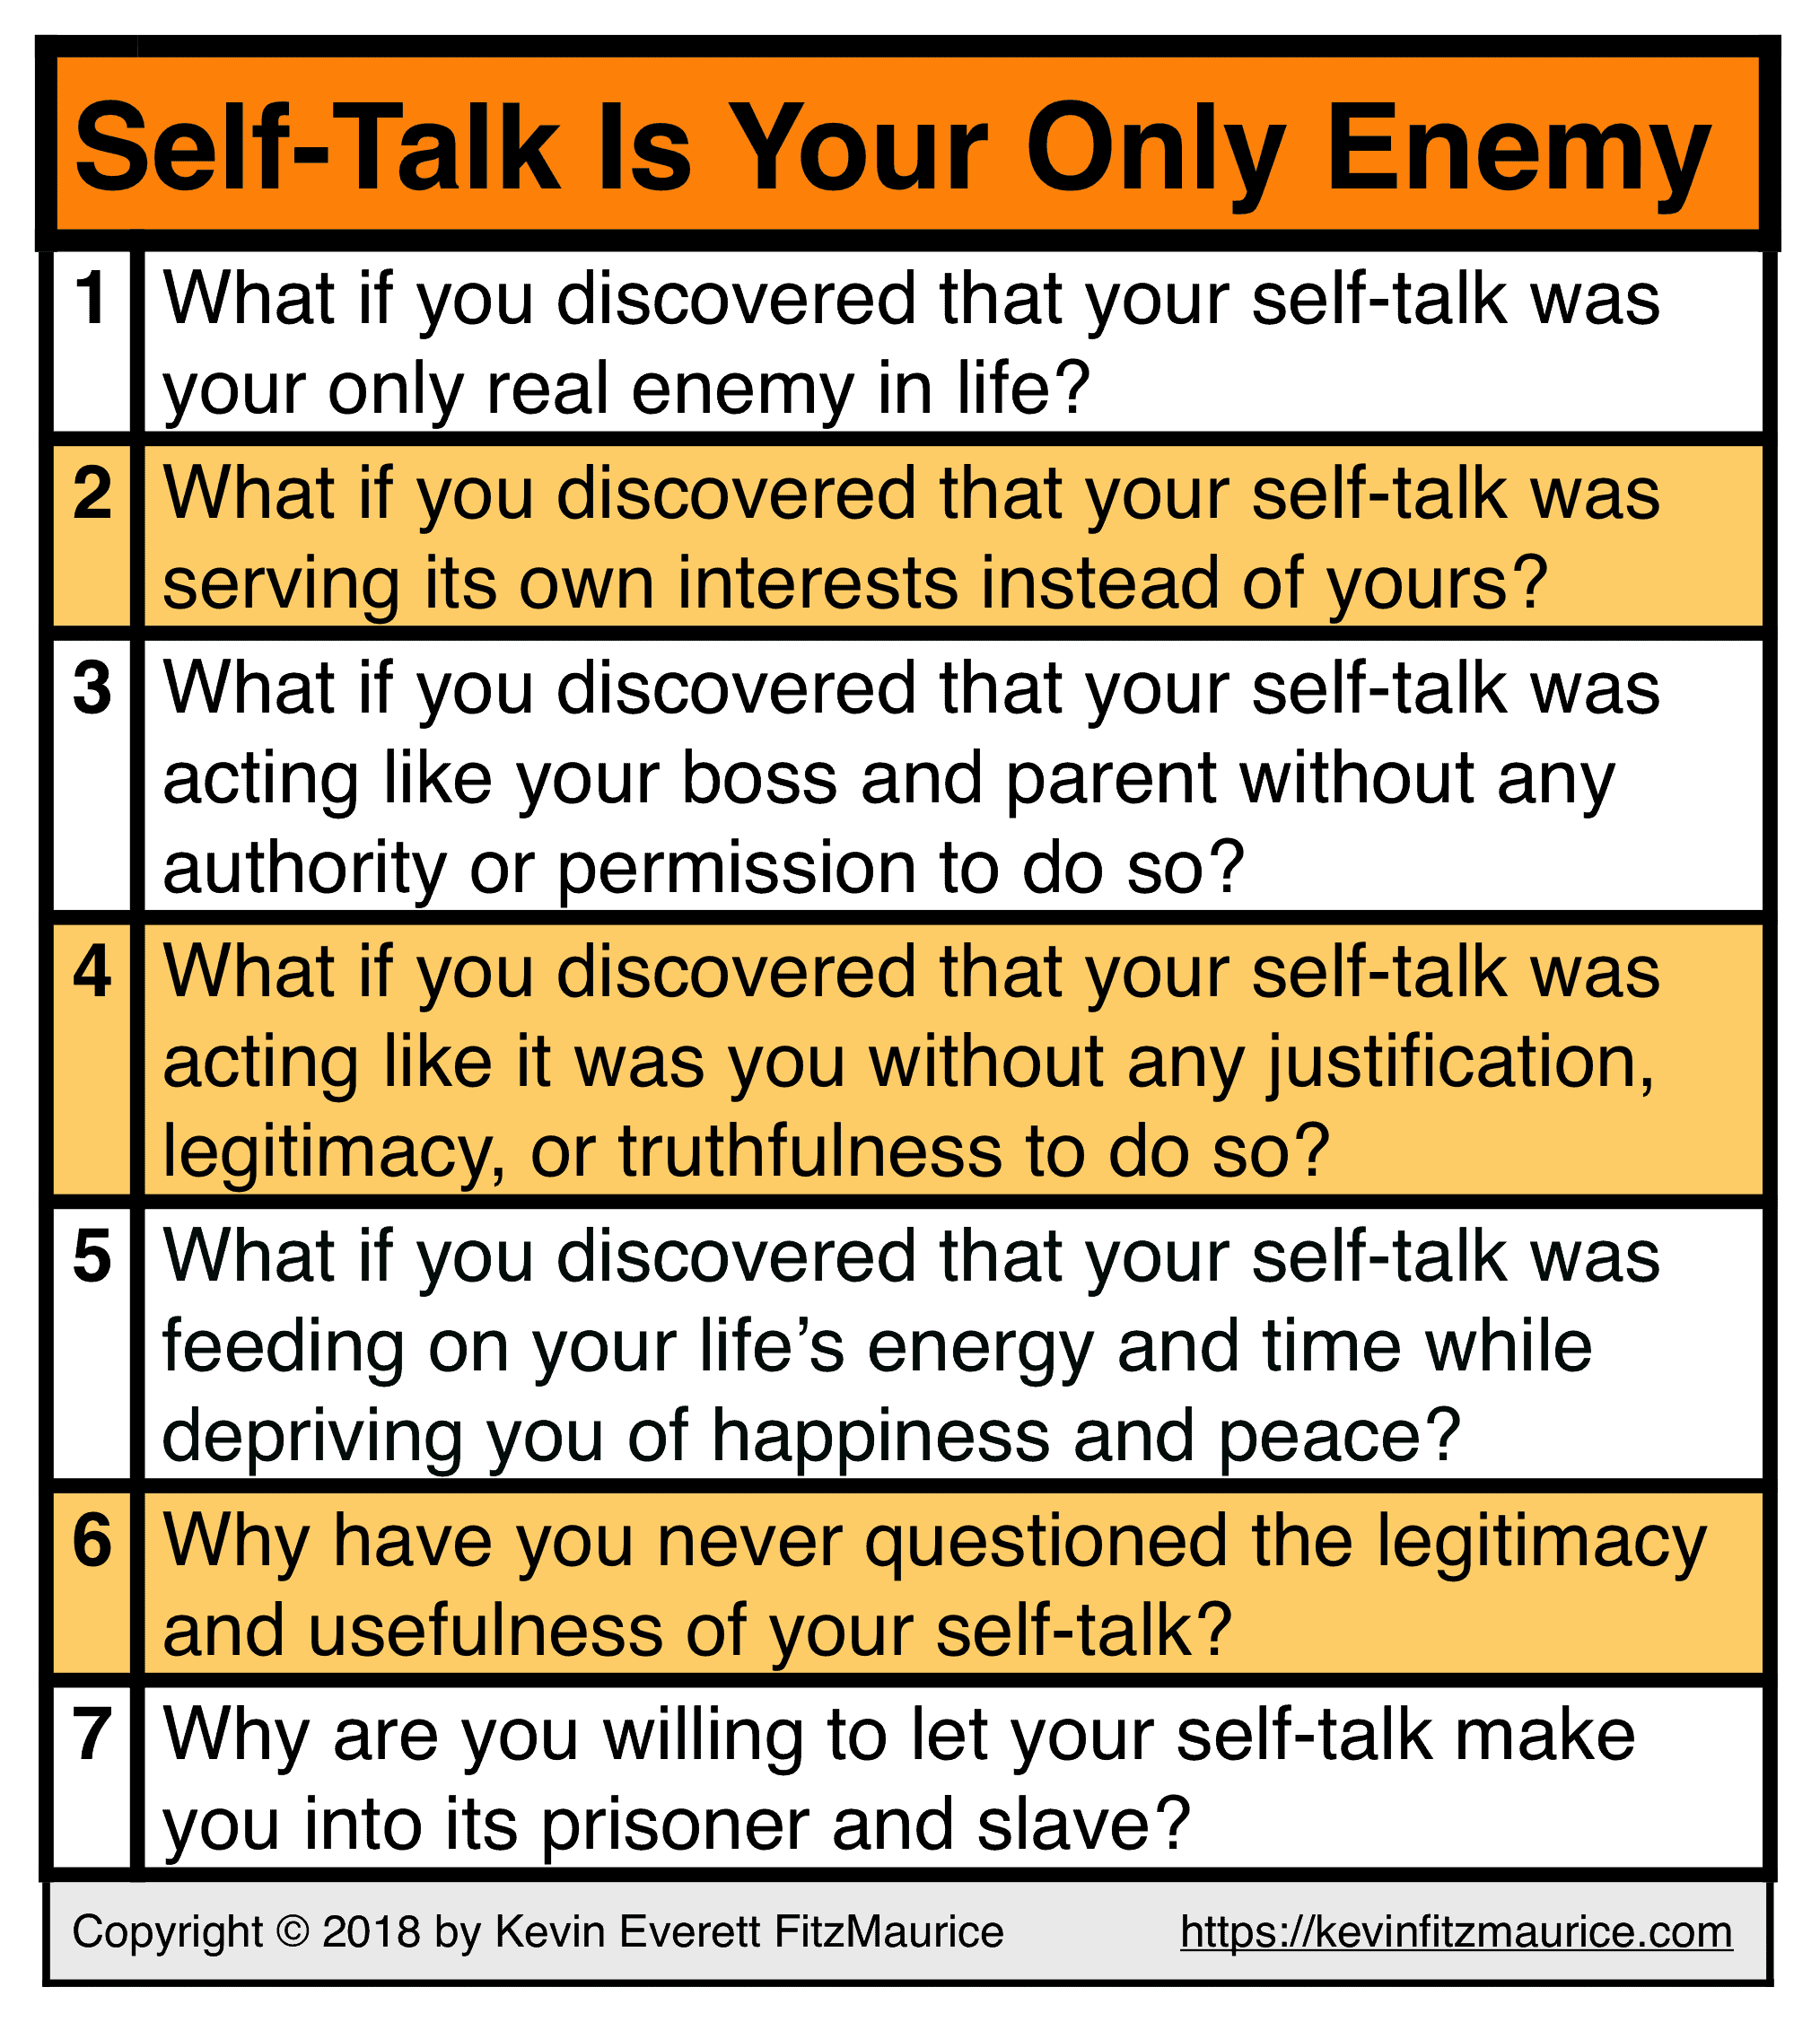 Self-Talk Is Your Only Real Enemy